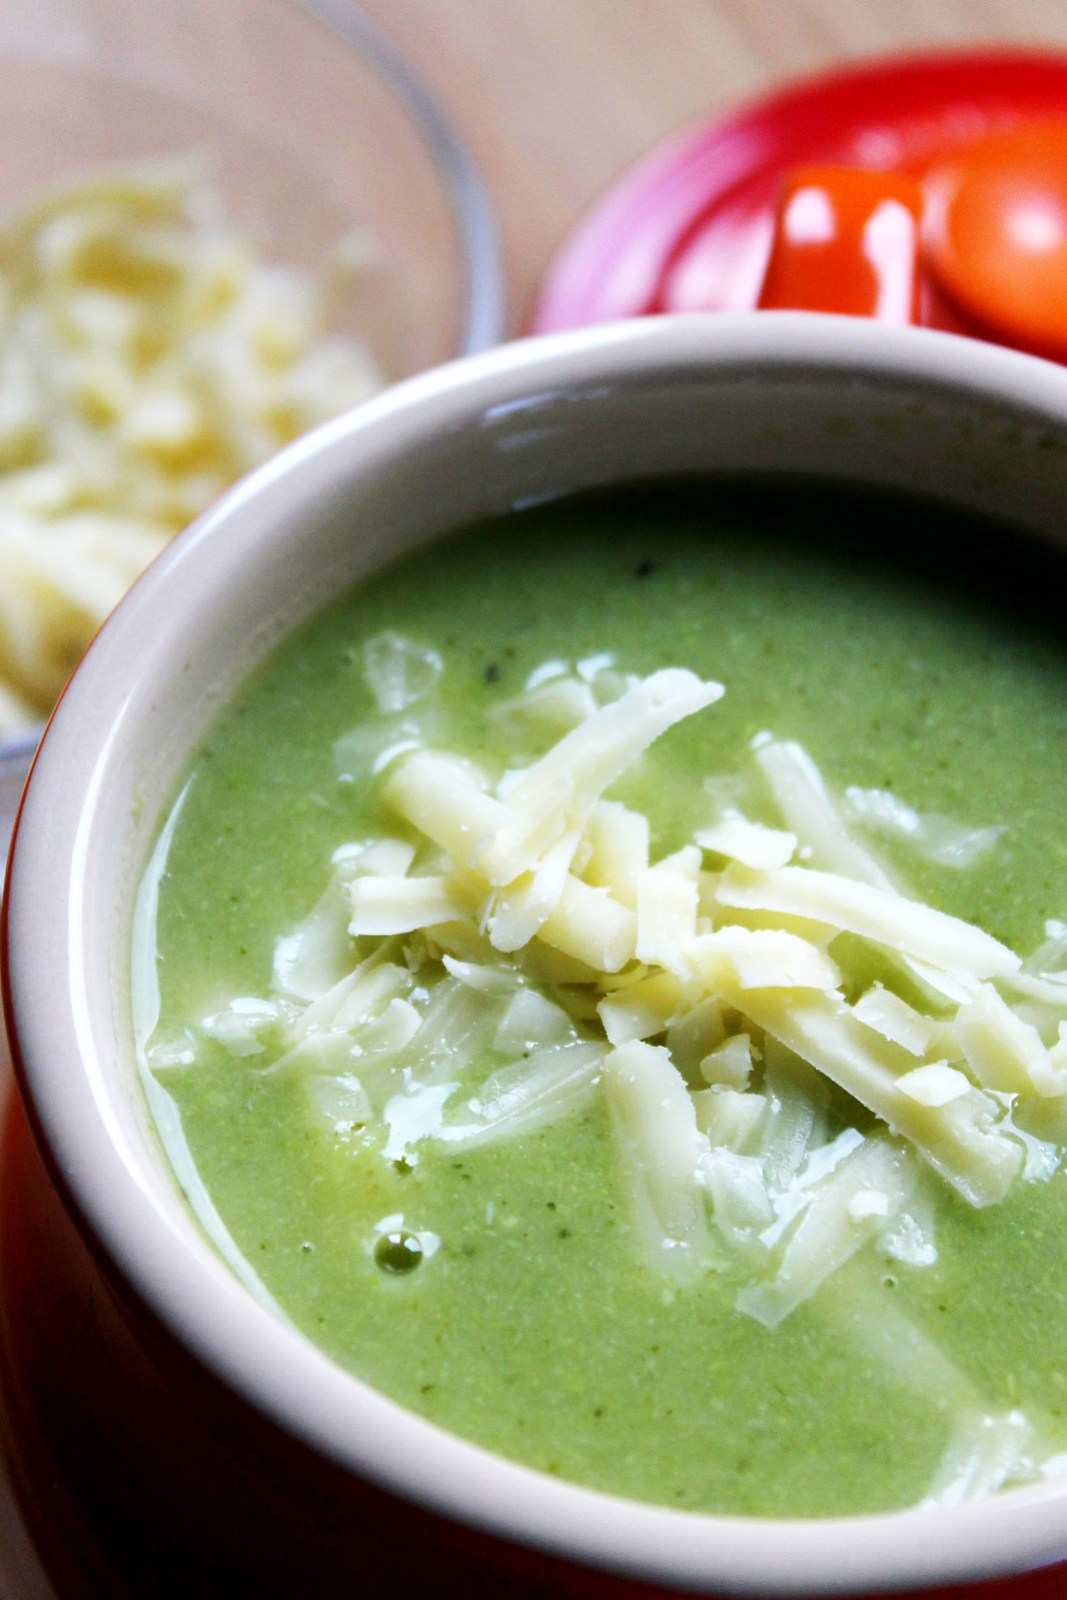 cheesy green soup